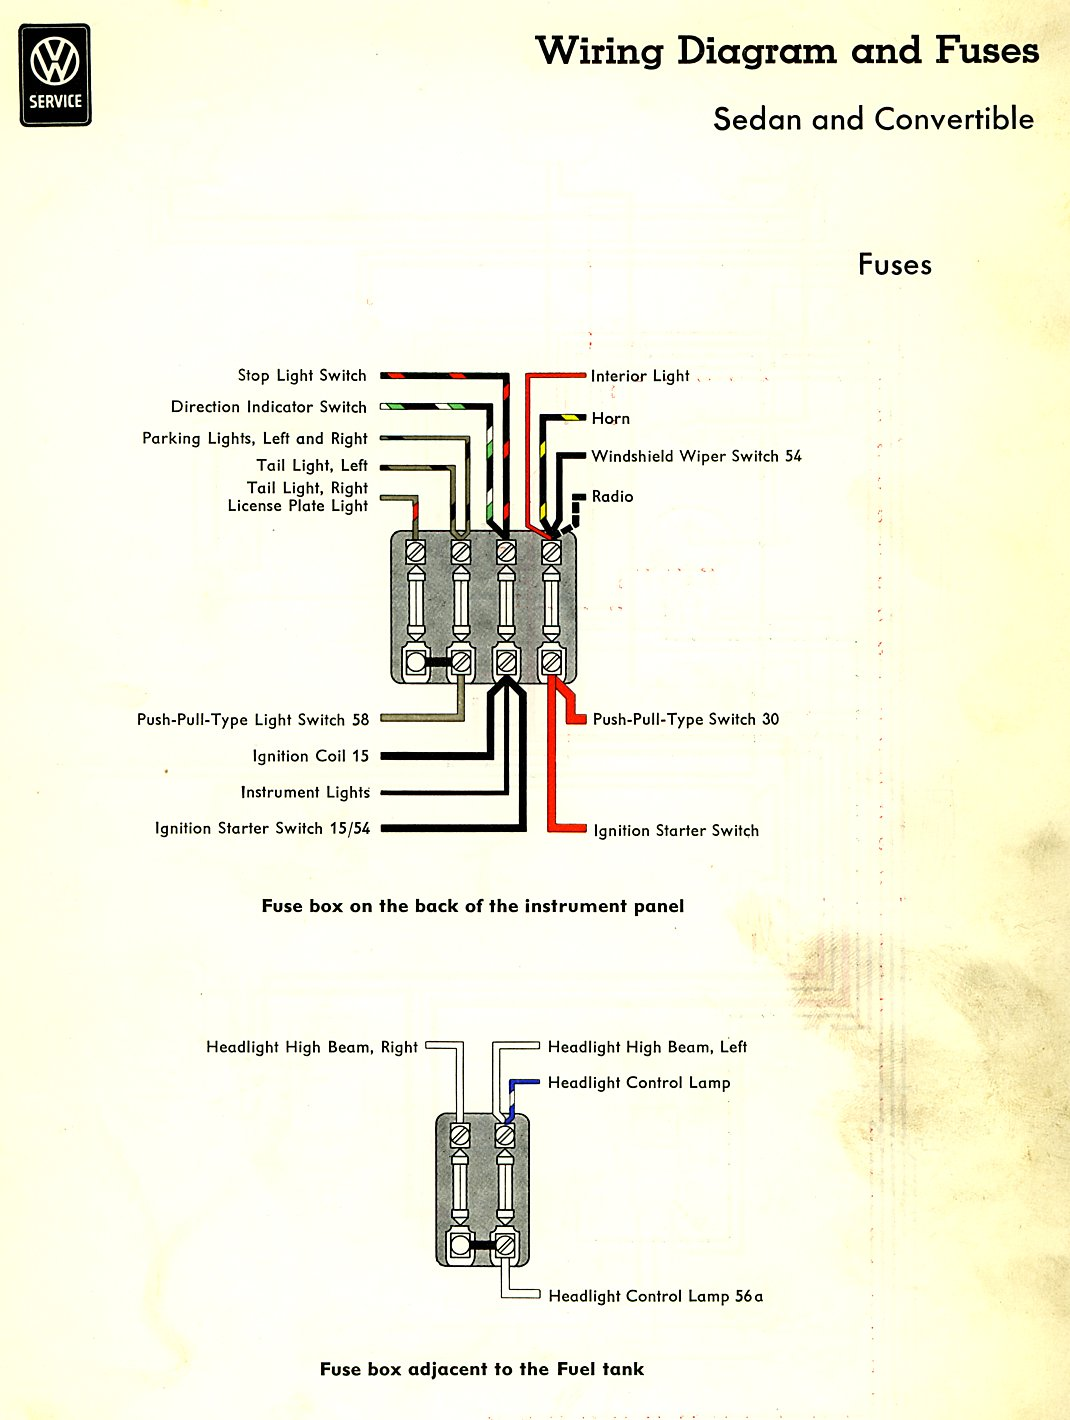 1966 beetle wiring diagram thegoldenbug com tags